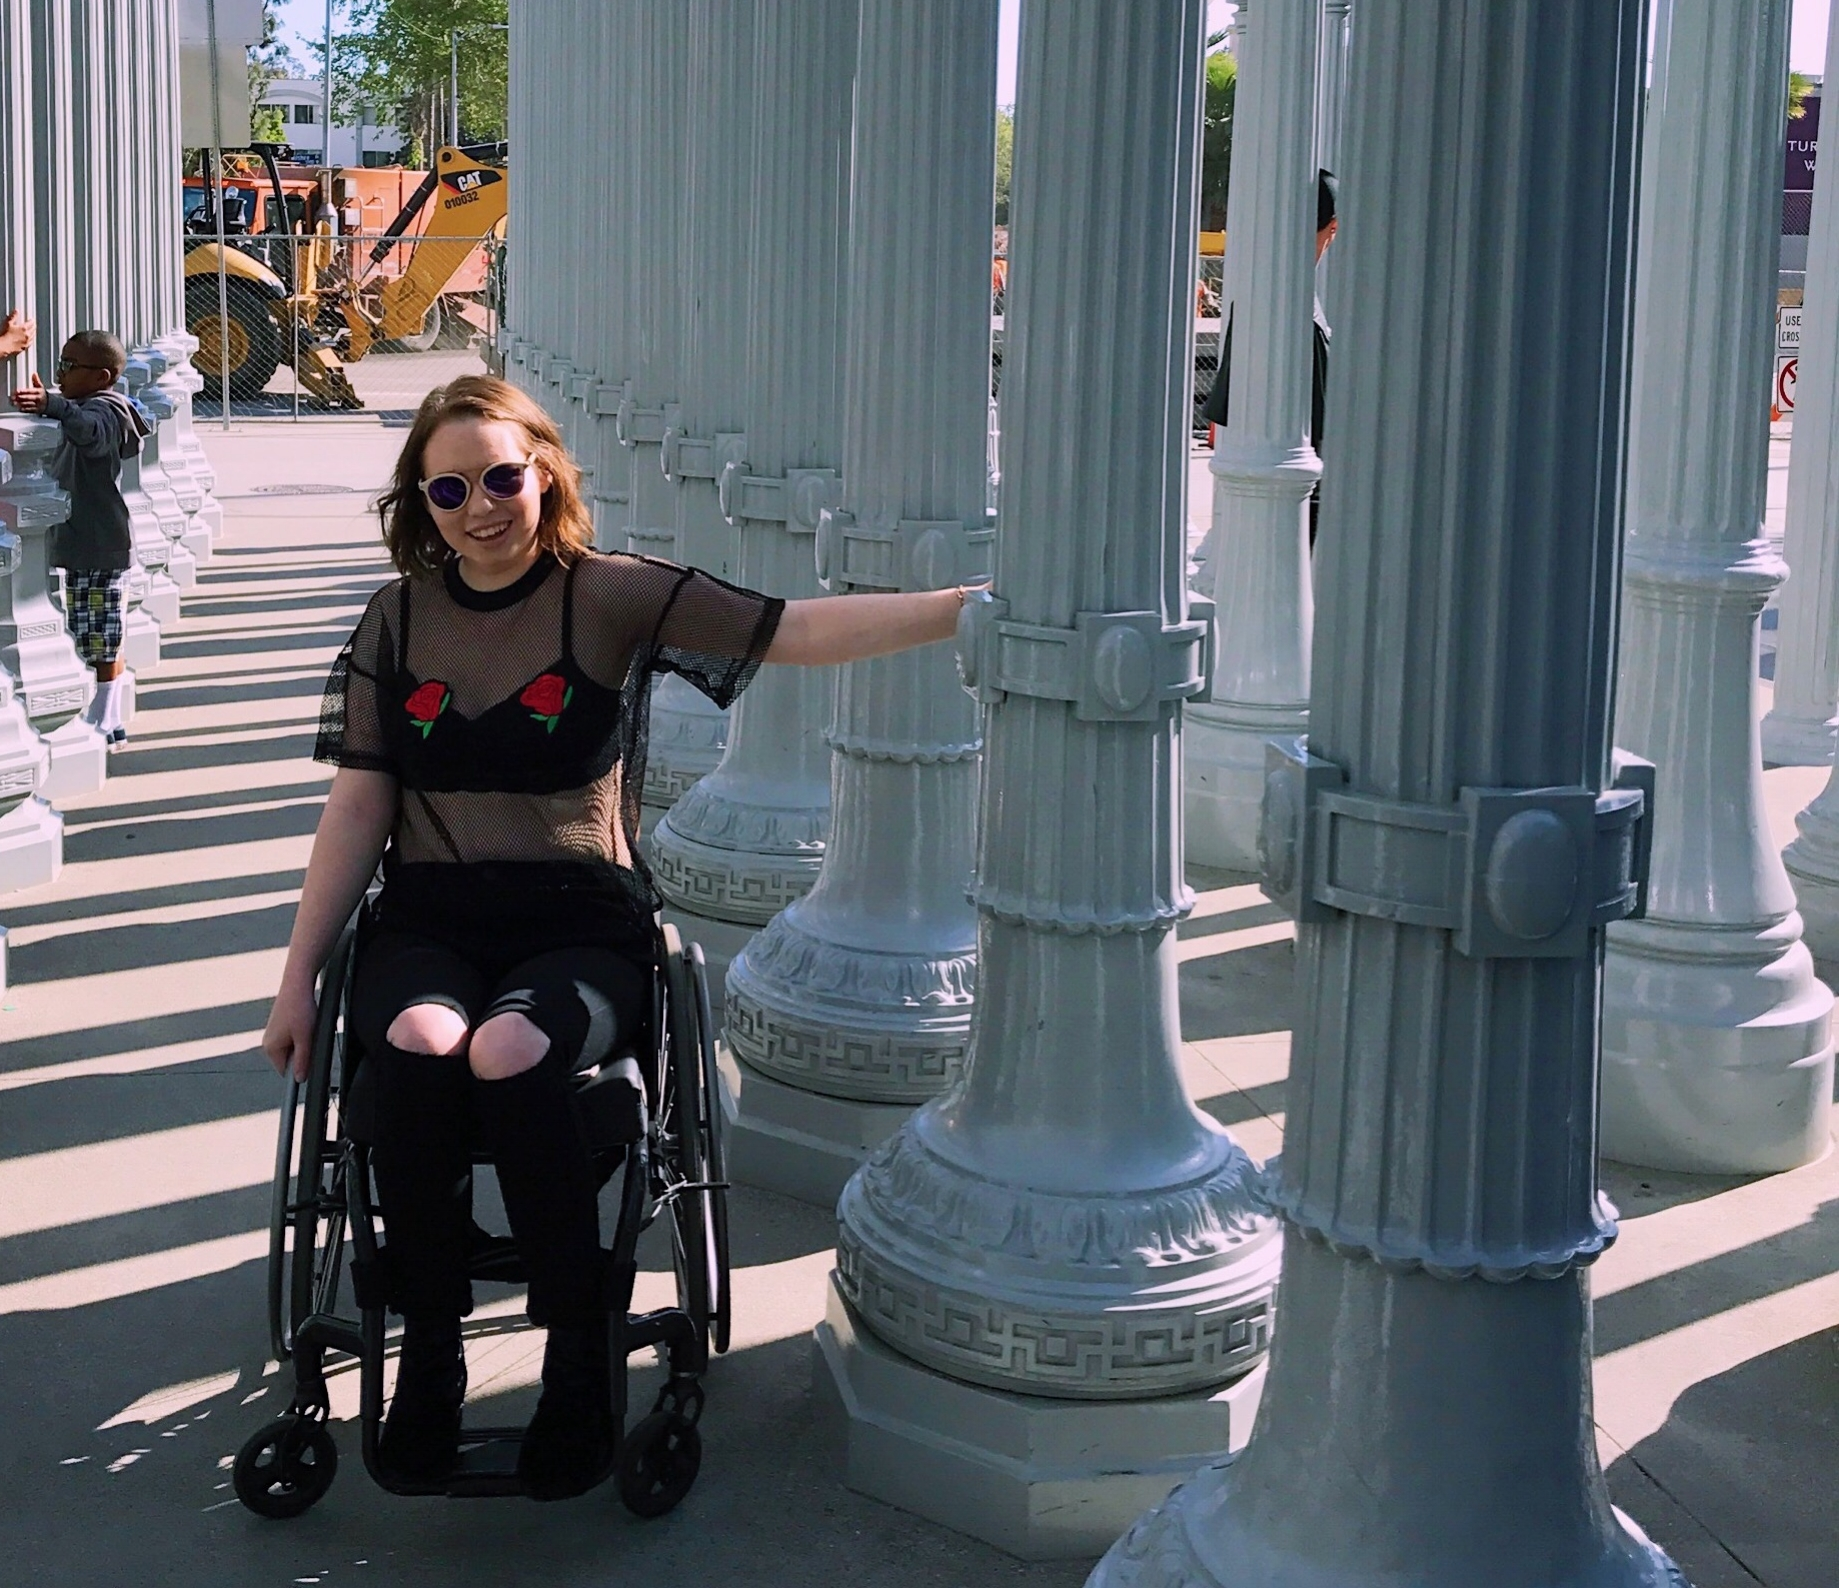 re: Social justice, disability, life. -